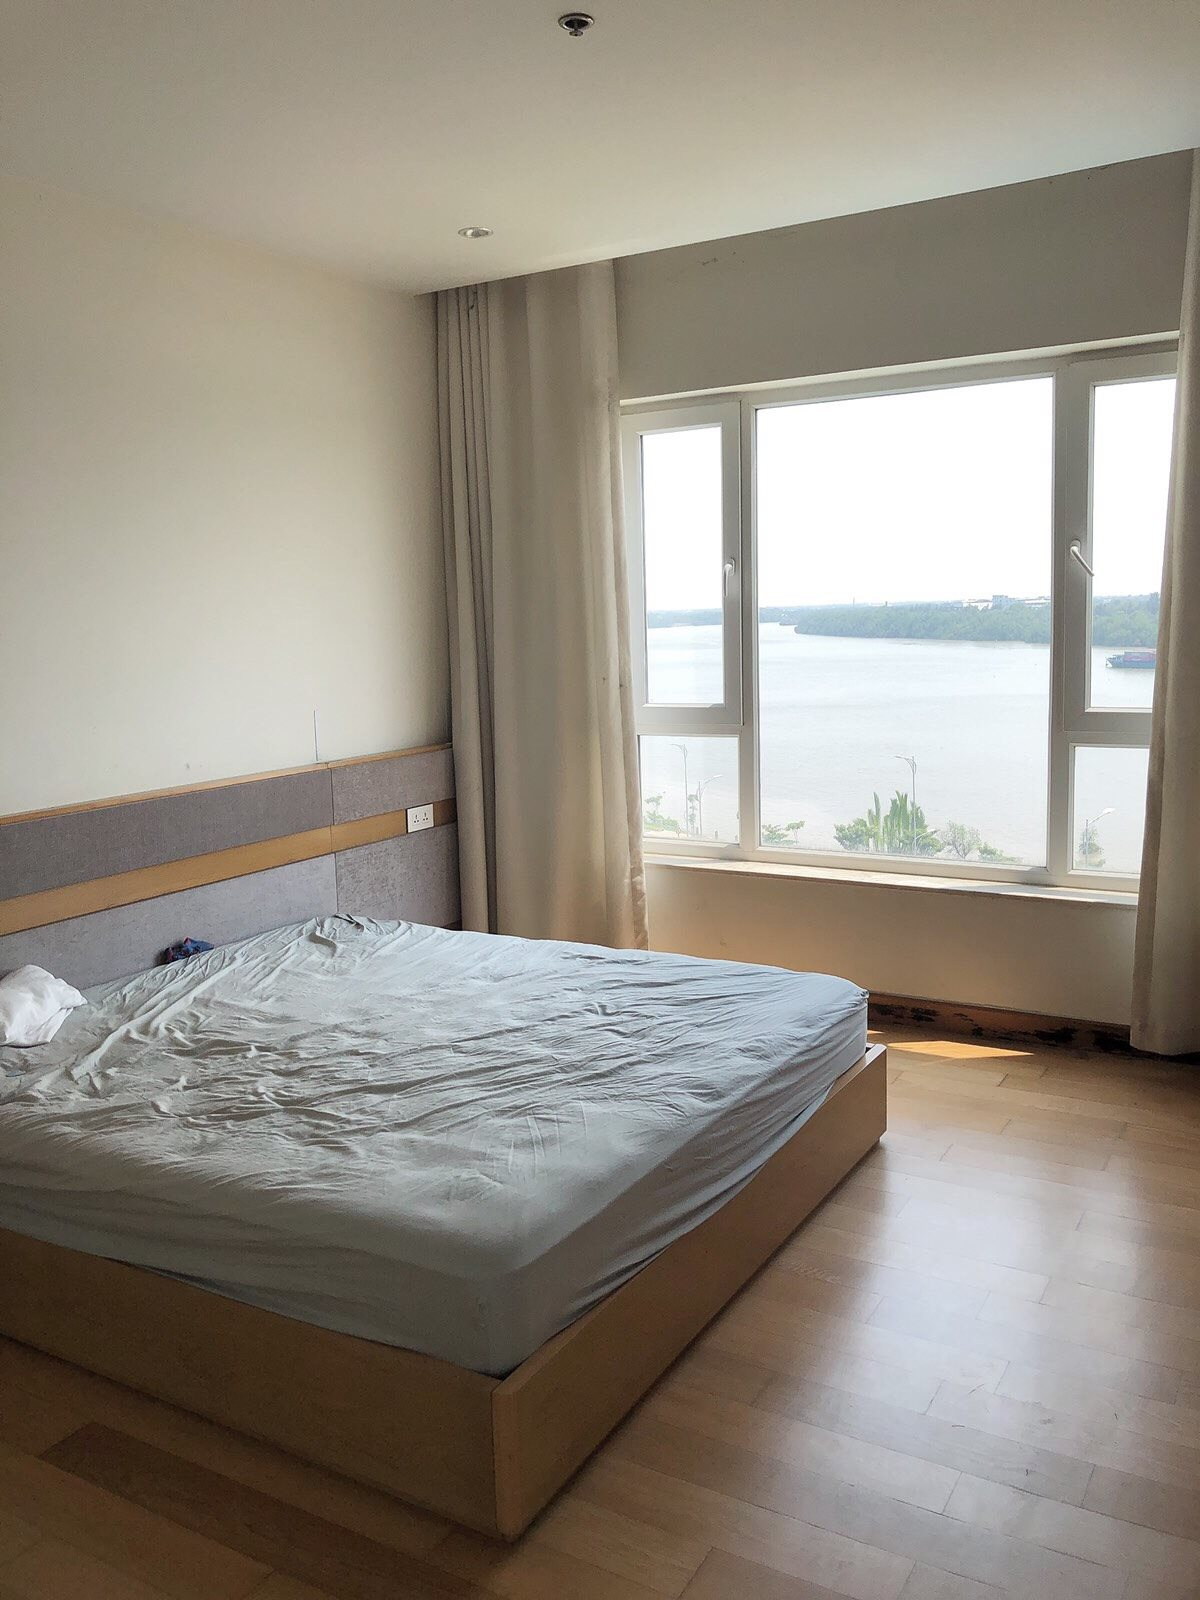 DI1244 - Diamond Island Apartment For Rent & Sale in Ho Chi Minh City - 2 bedroom